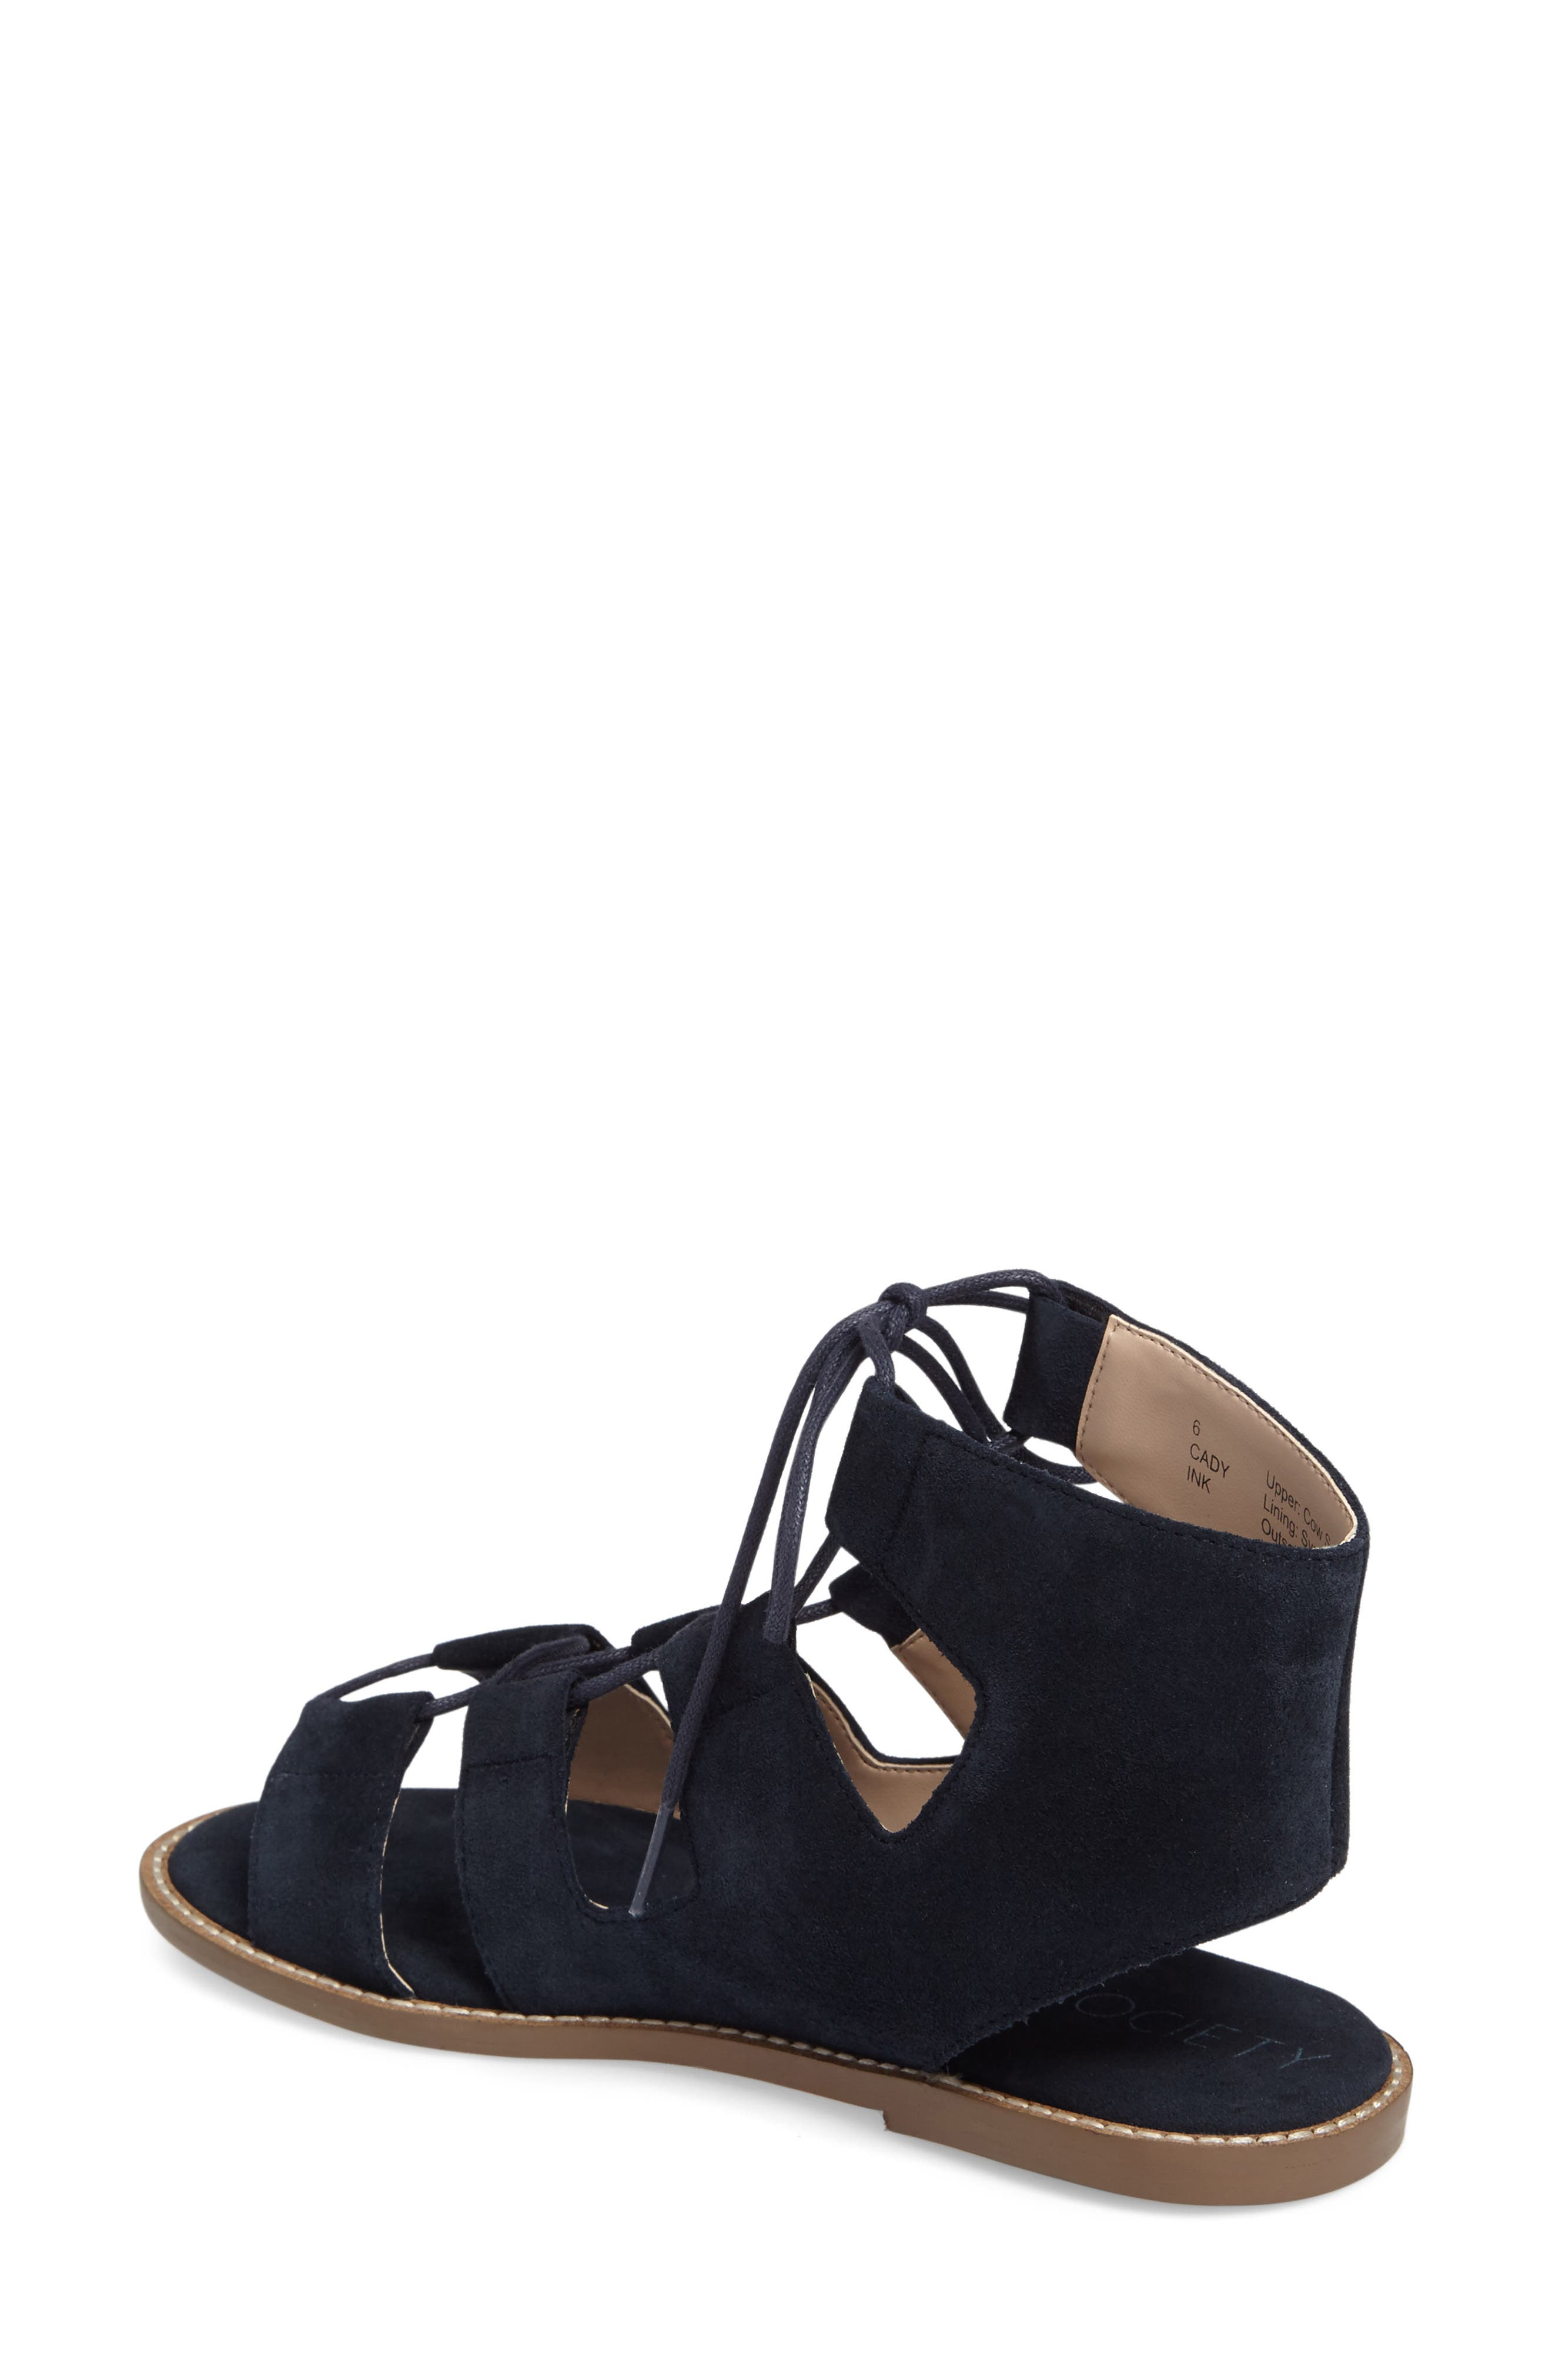 'Cady' Lace-Up Flat Sandal,                             Alternate thumbnail 2, color,                             Ink Navy Suede